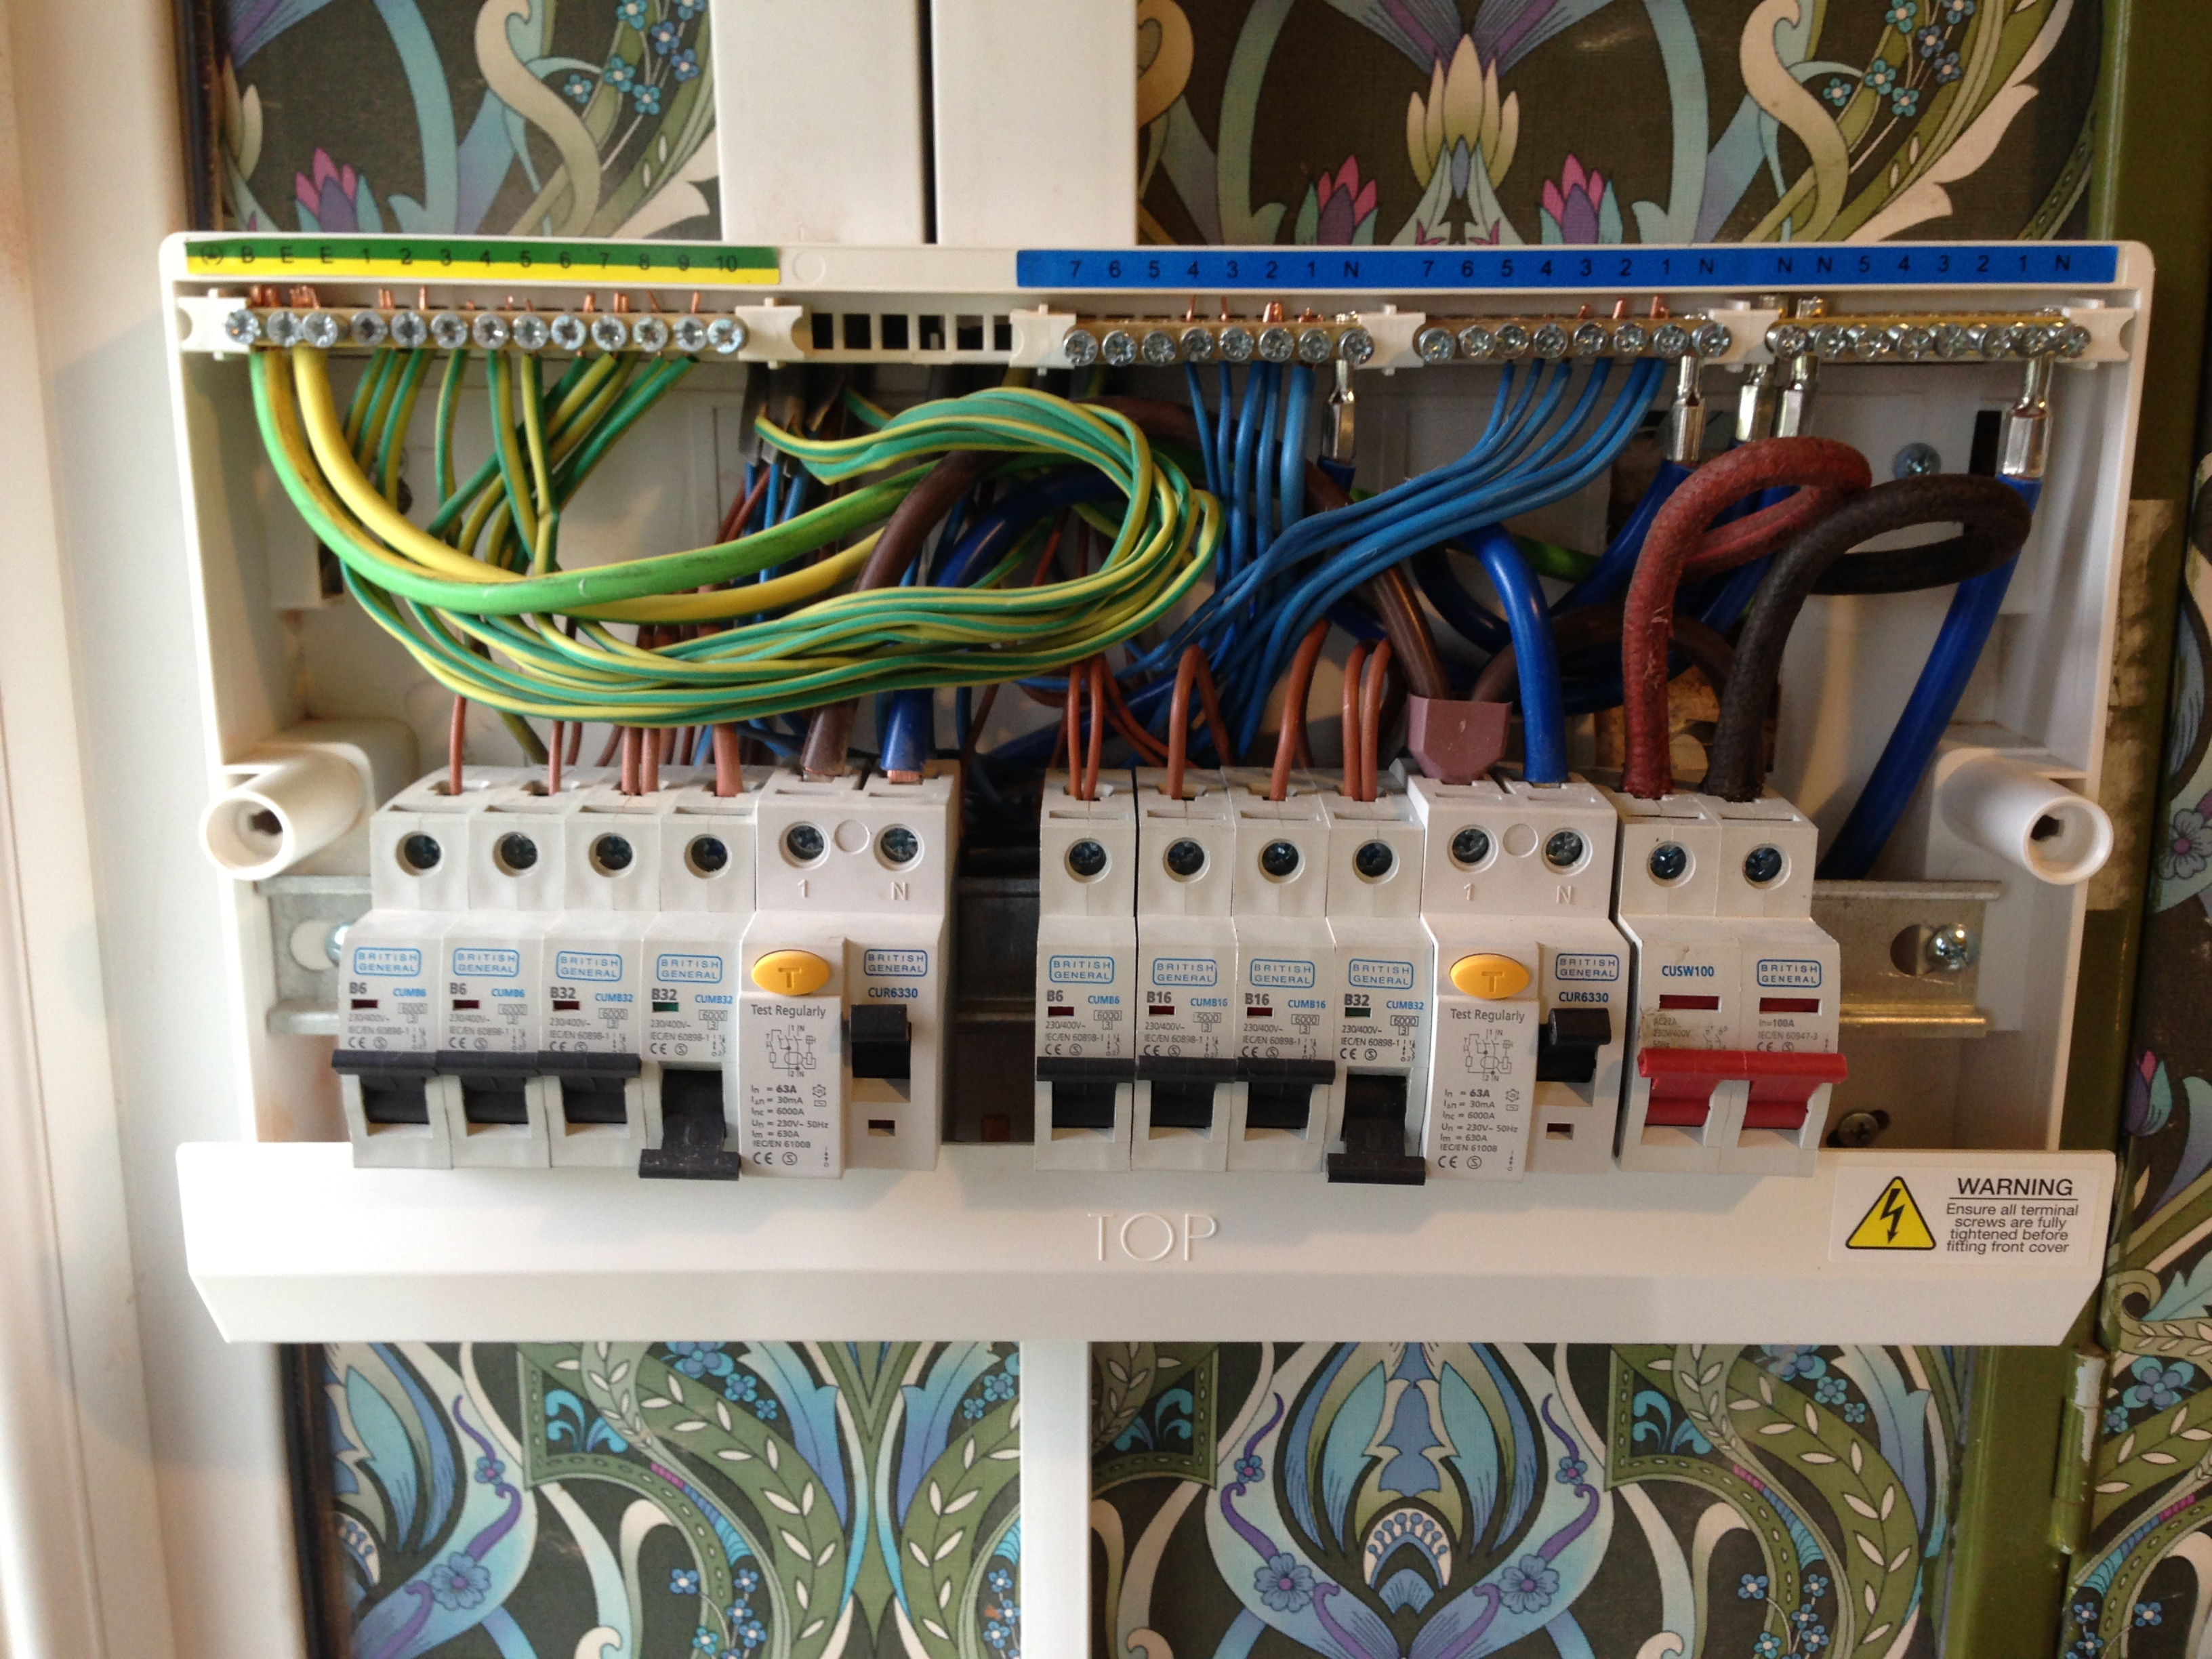 New Consumer unit installation · 3 DAY COMPLETE RE-WIRE... NEVER ANY EXCUSE  FOR A MESSY FUSEBOARD